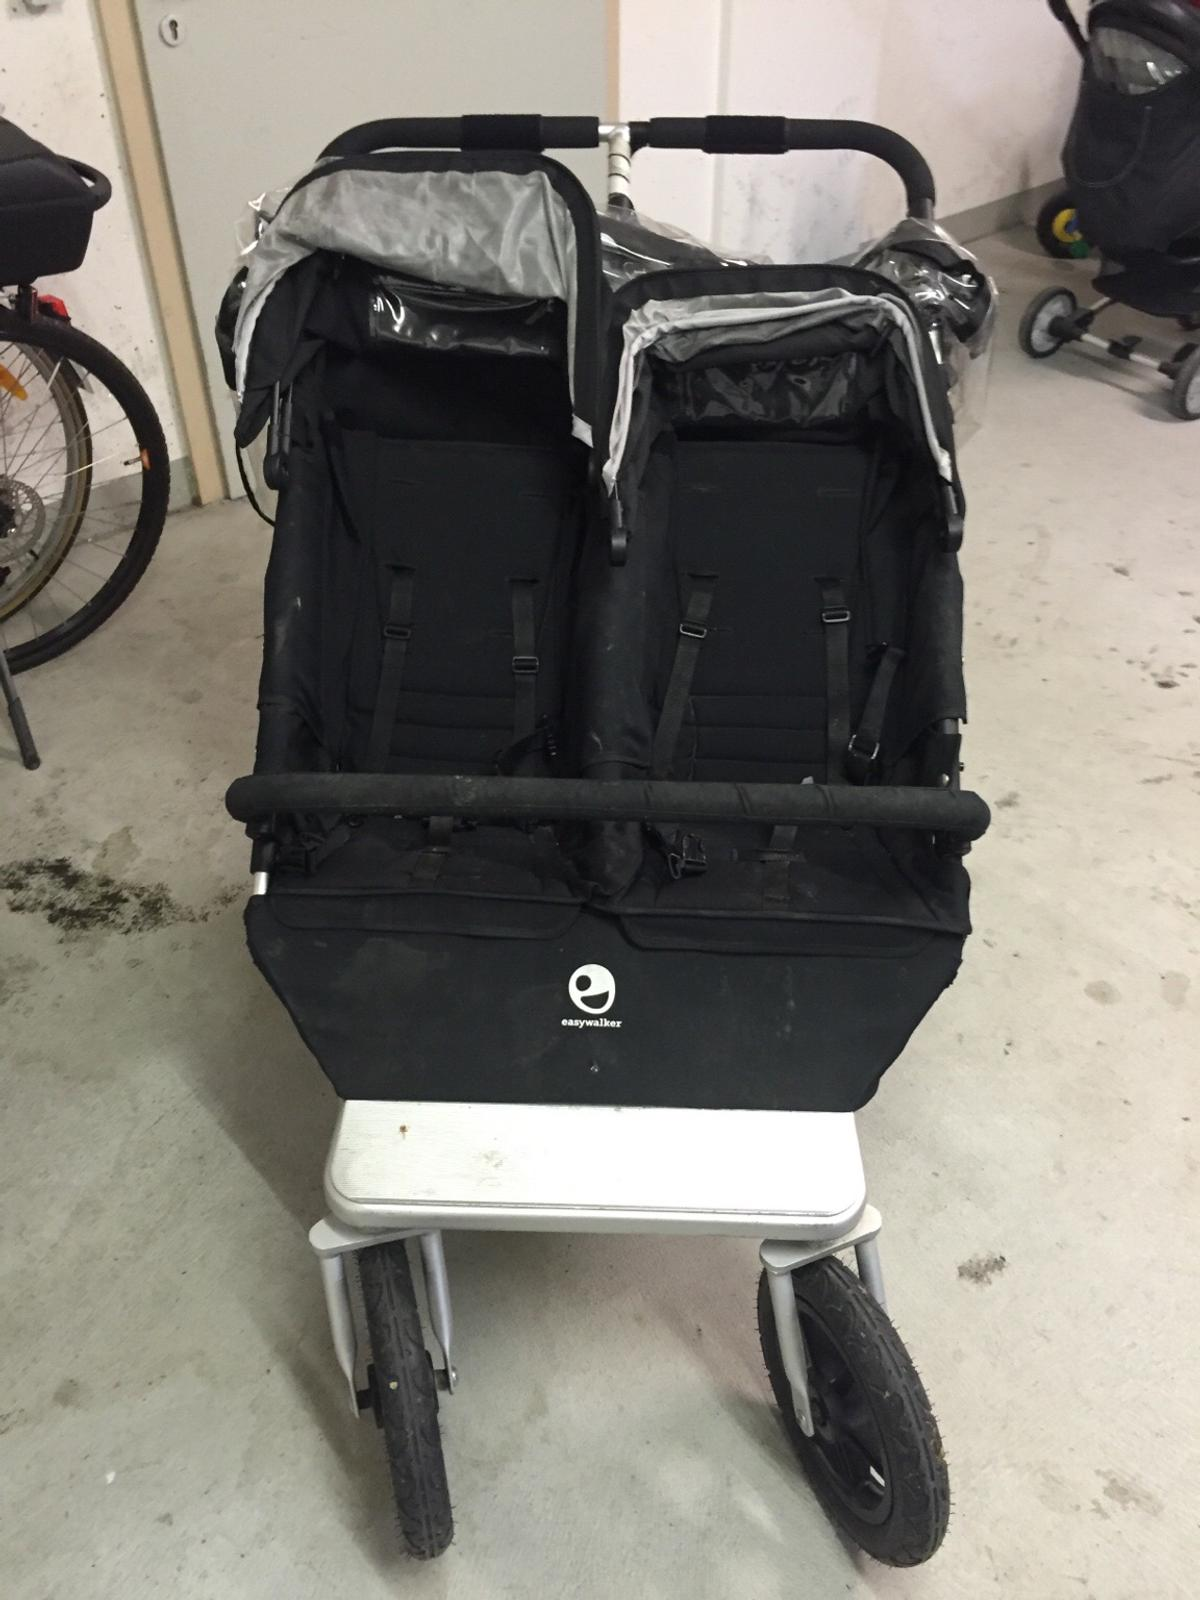 Kinderwagen Easywalker Duo Easy Walker Duo Zwillings Geschwisterwagen